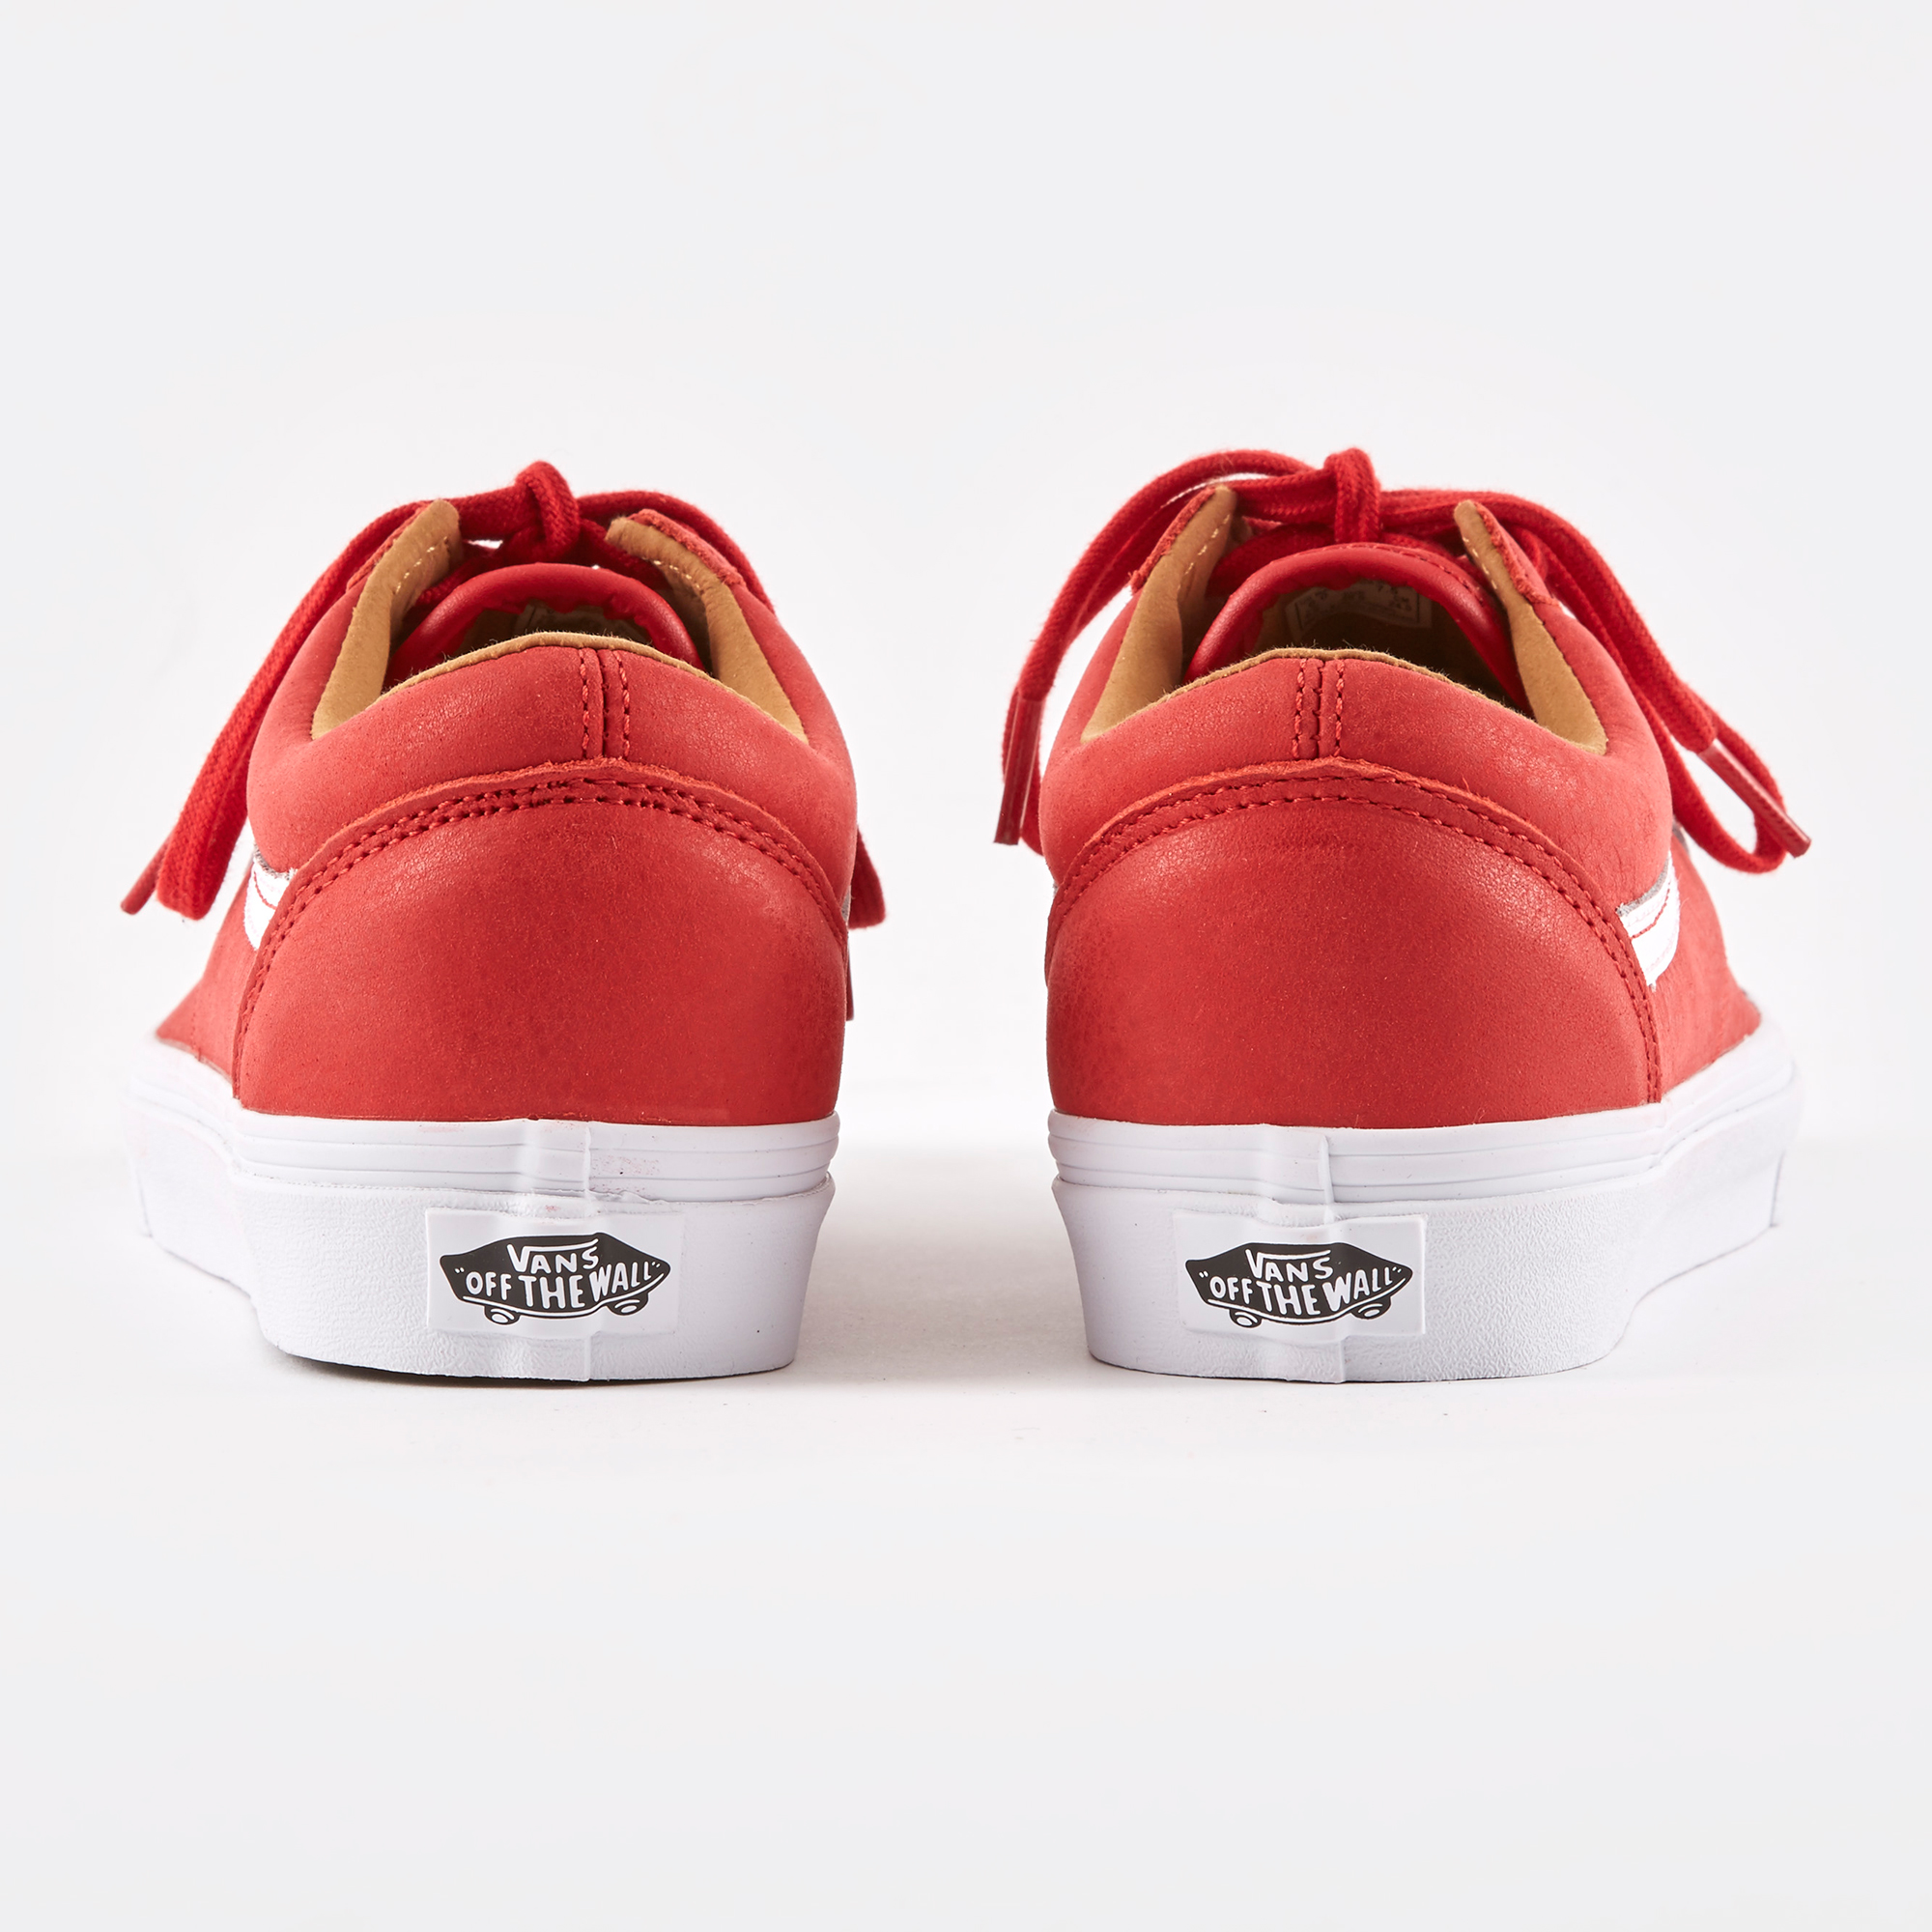 d902bd25db8b91 Vans Old Skool Premium Leather - Racing Red